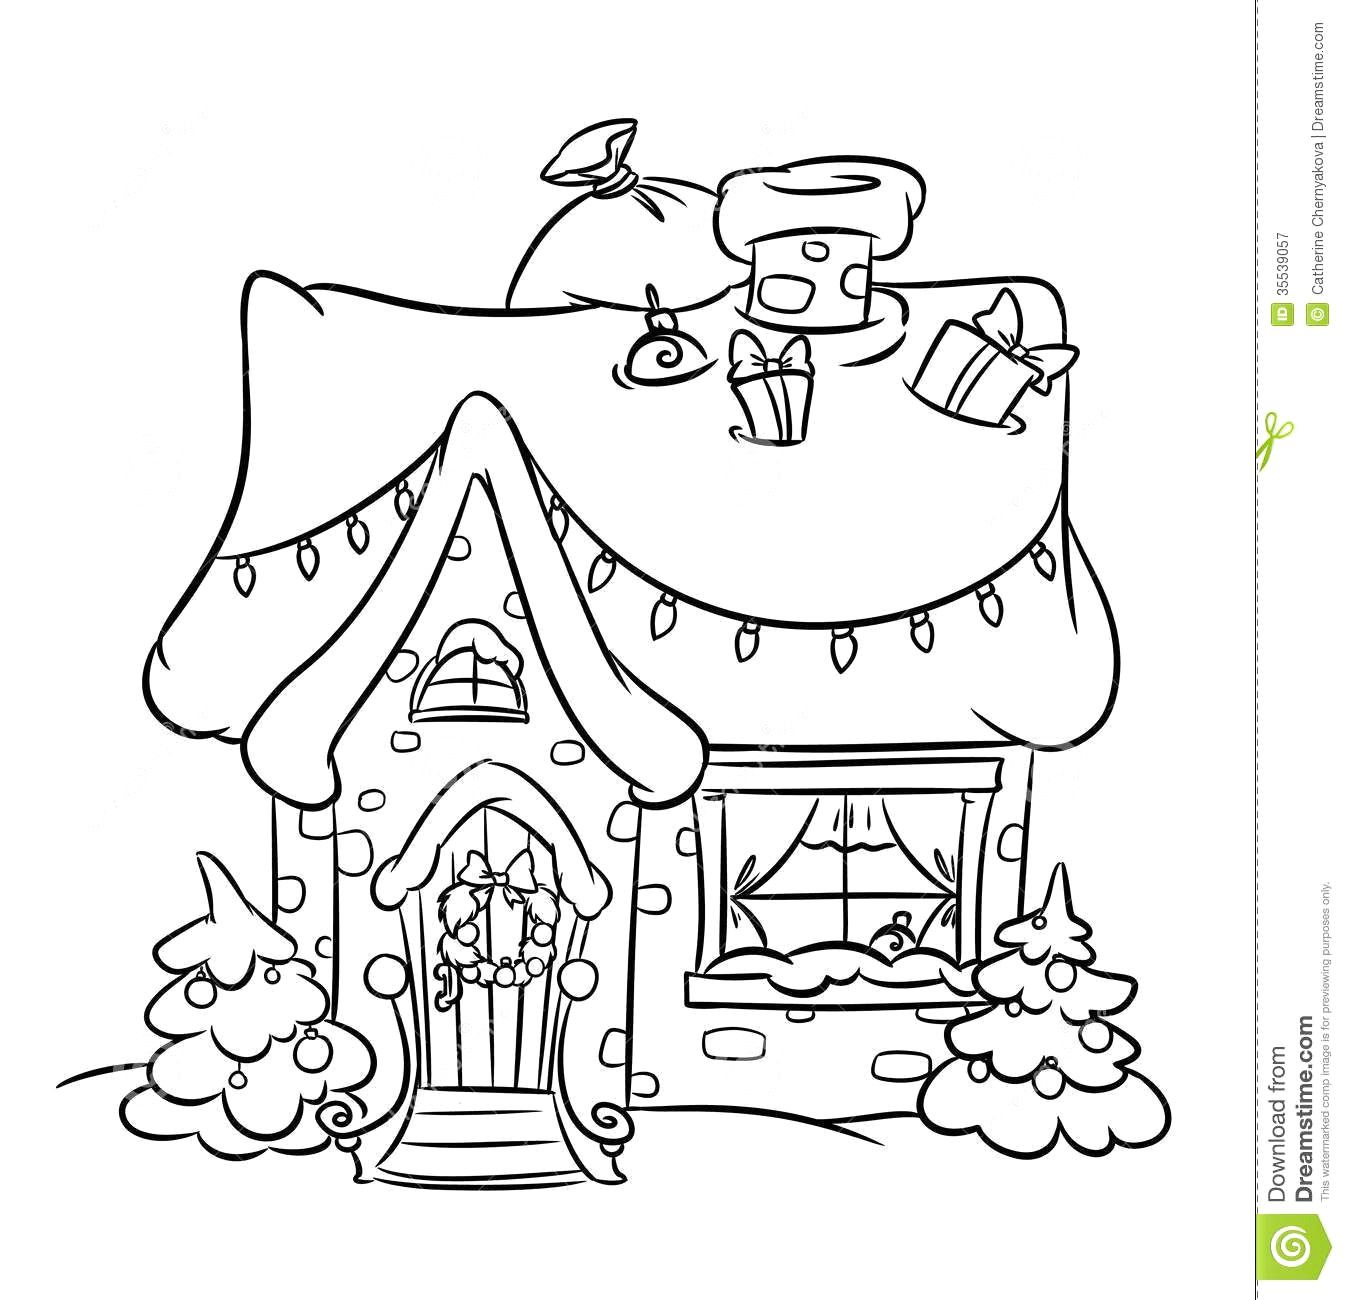 Image Result For Whoville House Christmas Coloring Pages Coloring Pages House Colouring Pages